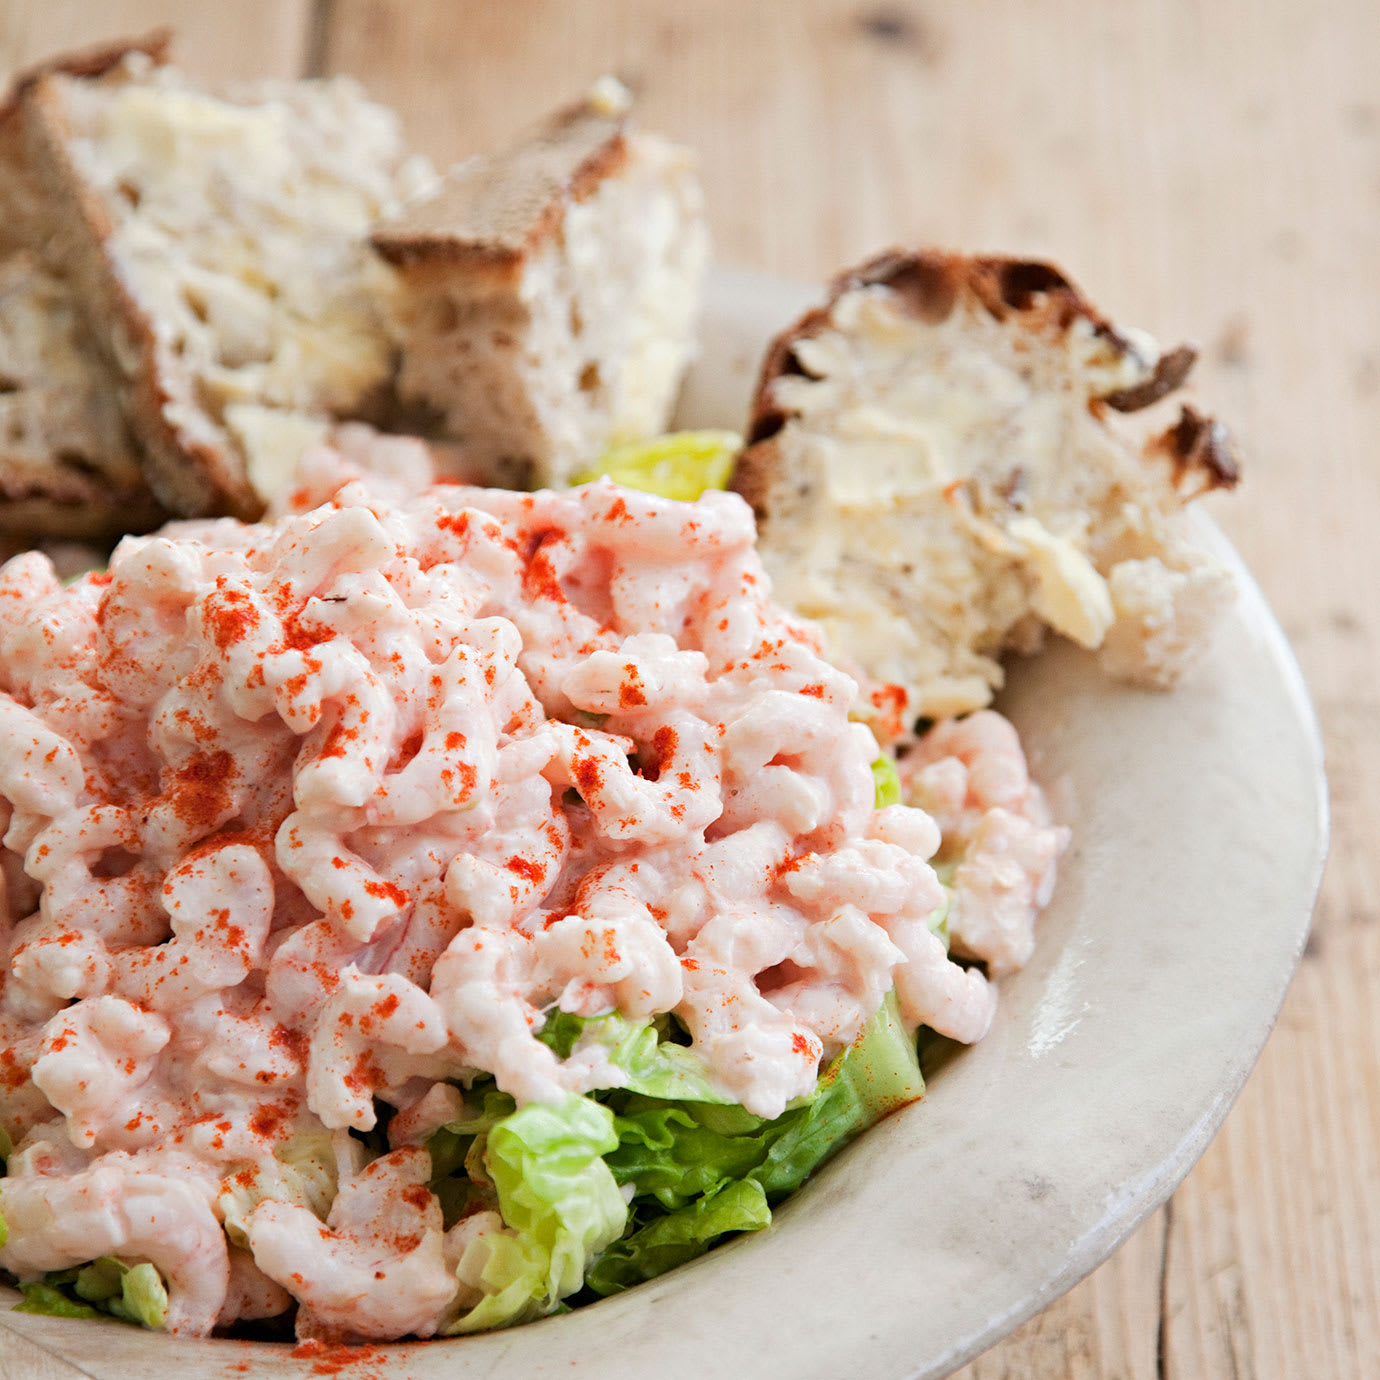 Prawns lettuce and bread on a plate.